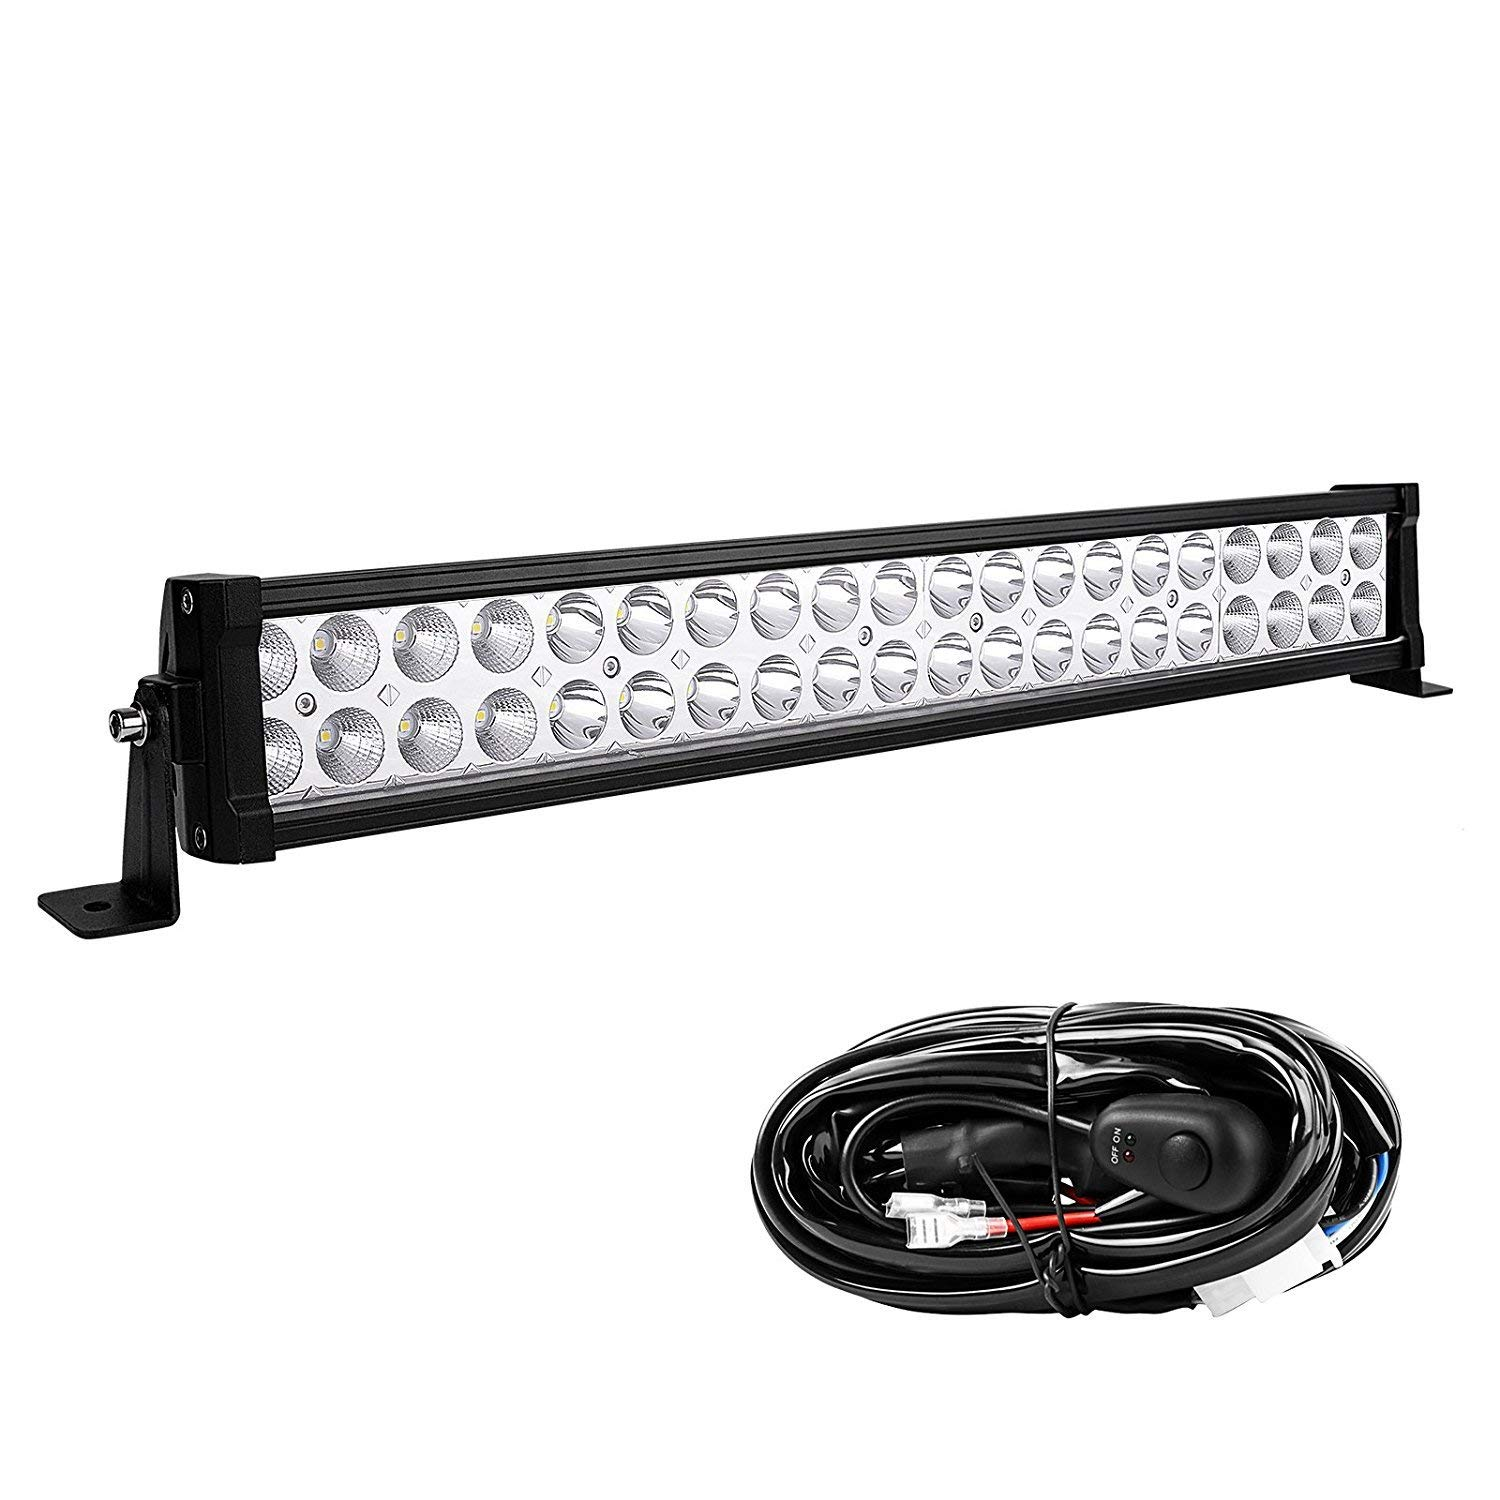 YITAMOTOR 24 Inch Light Bar Offroad Spot Flood Combo Led Bar Waterproof Dual Row LED Work Light with Wiring Harness compatible for Truck 4X4 LED Light Bar 120W White Jeep Boat ATV